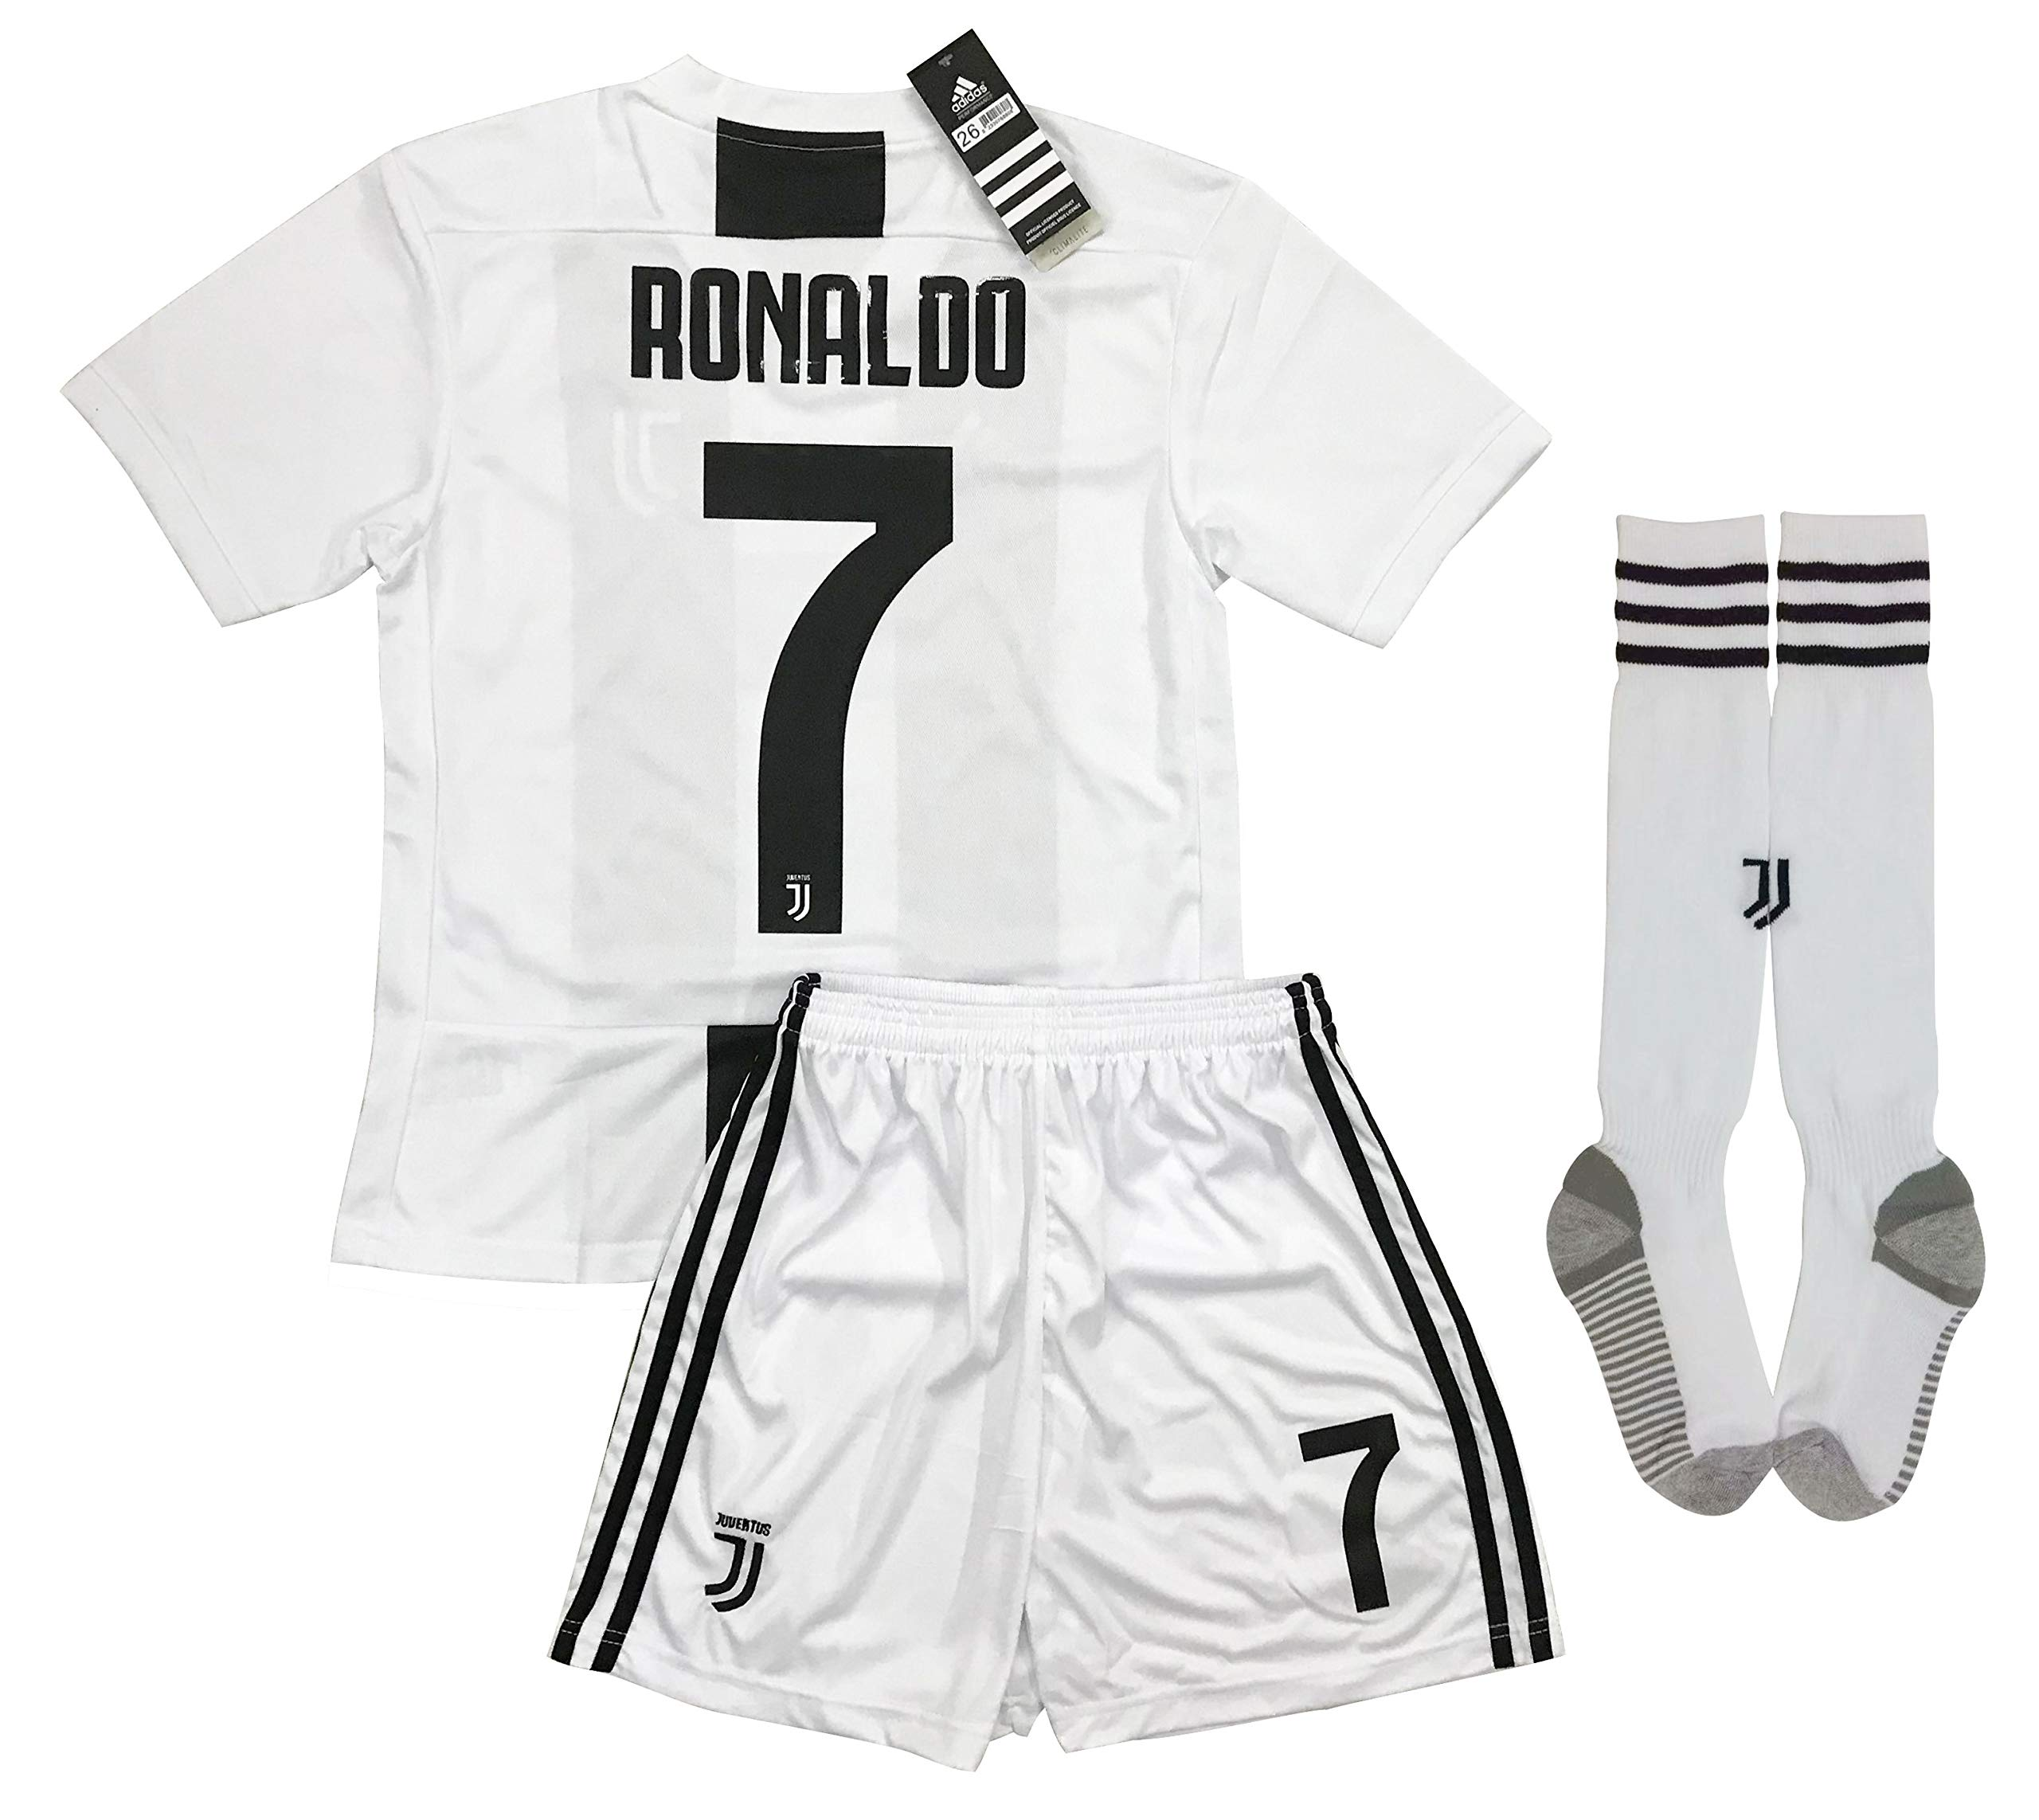 d8b874c71 LiveSport New 2018-2019 Ronaldo  7 Juventus Home Jersey Shorts and Socks  for Kids   Youths (11-13 Years Old)